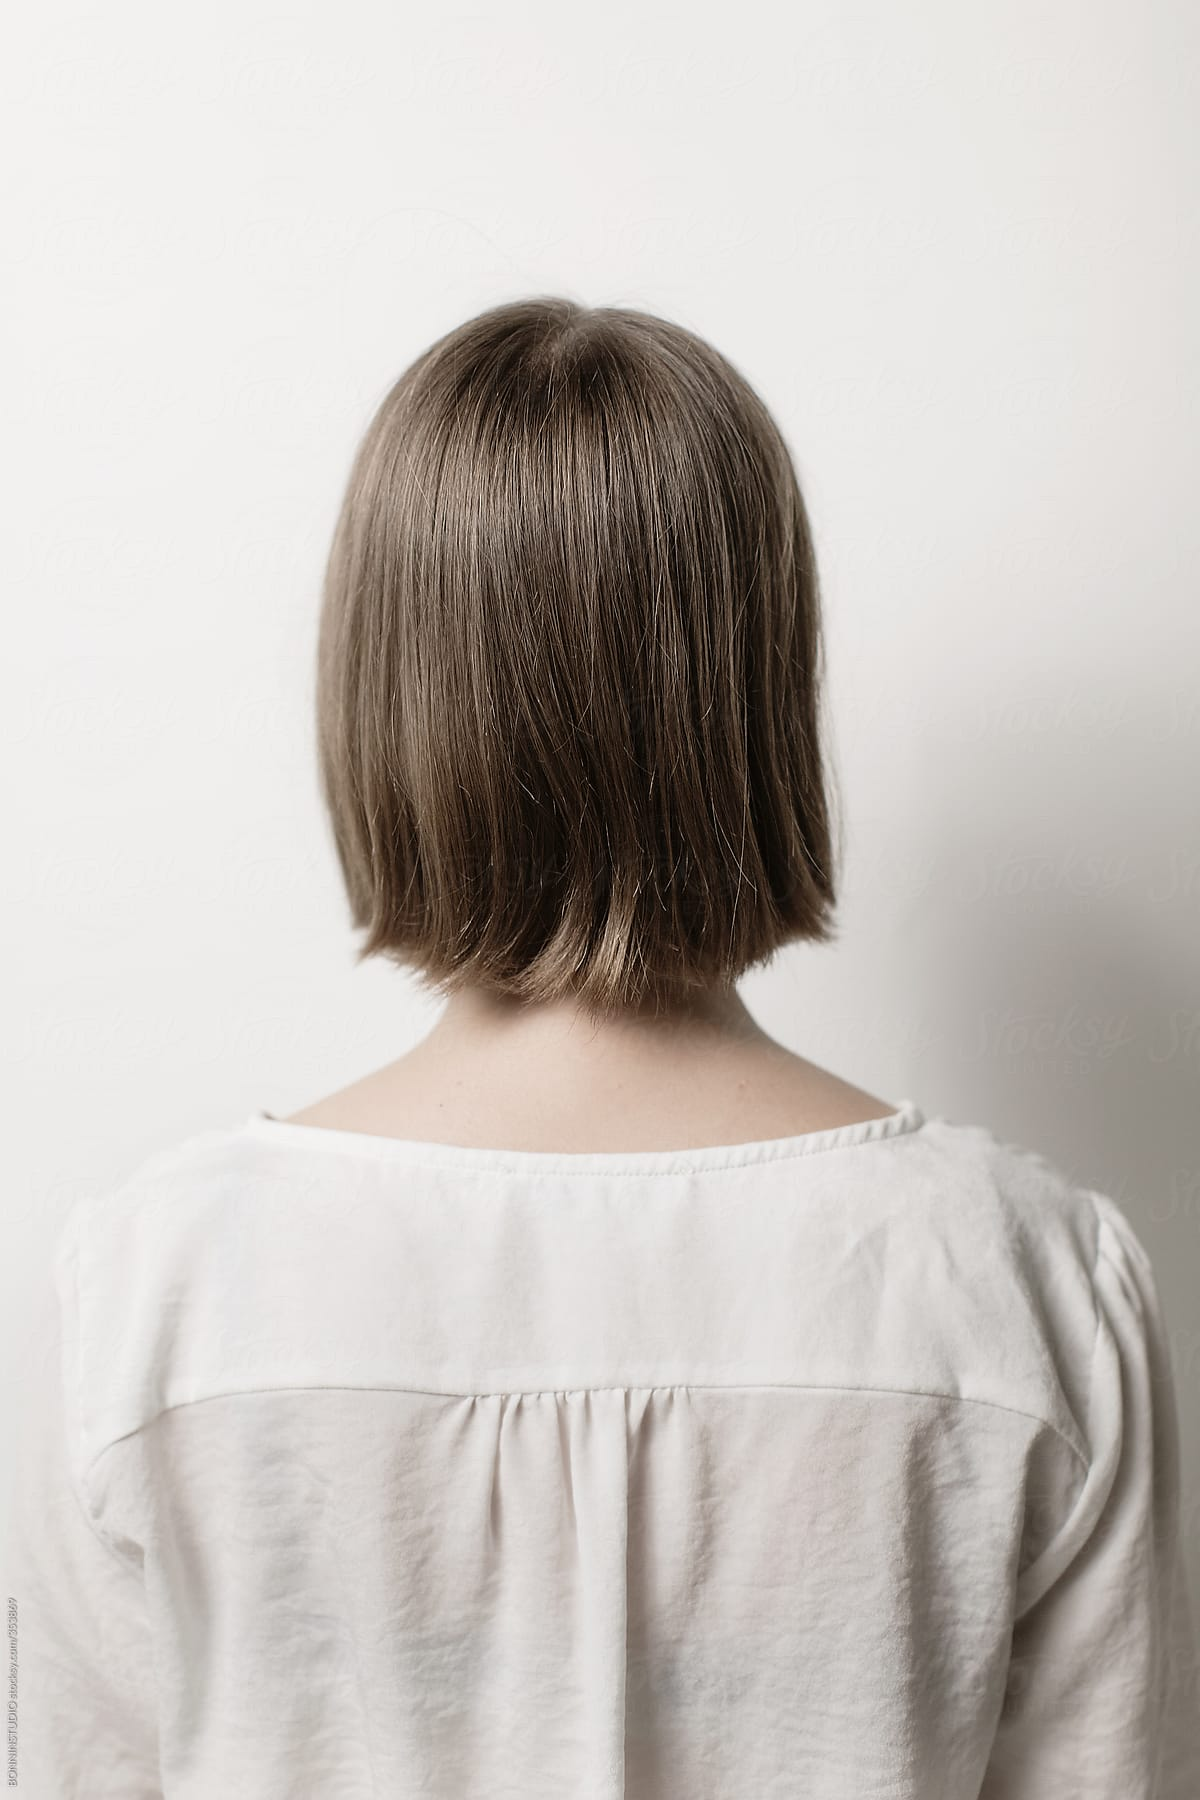 Back View Of Young Woman With Short Hair Over White Background By Bonninstudio Stocksy United